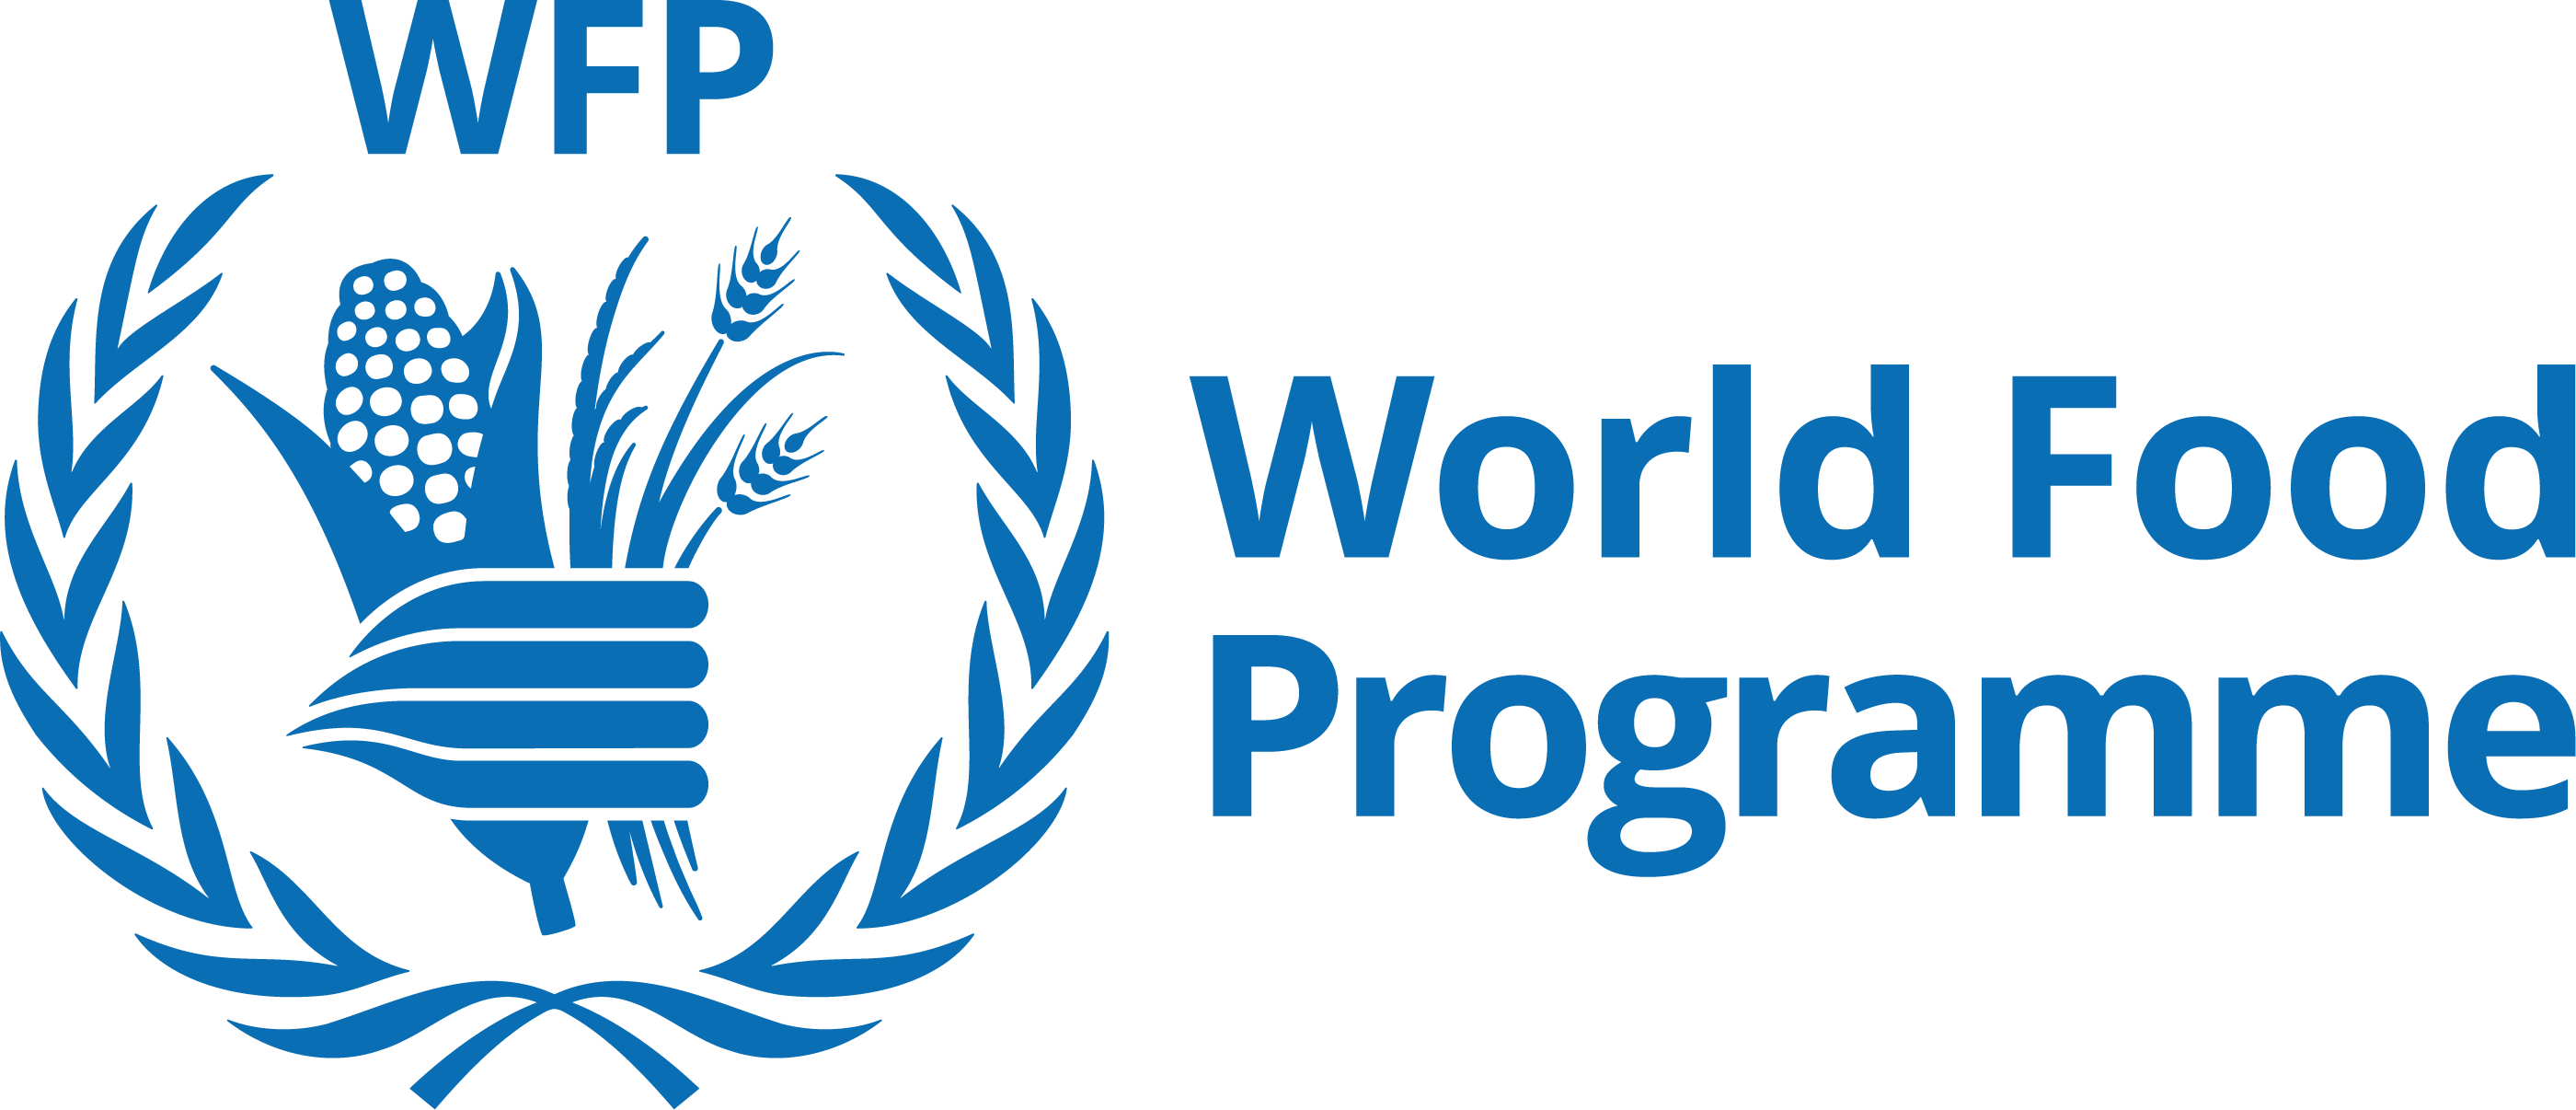 WFP World Food Programme